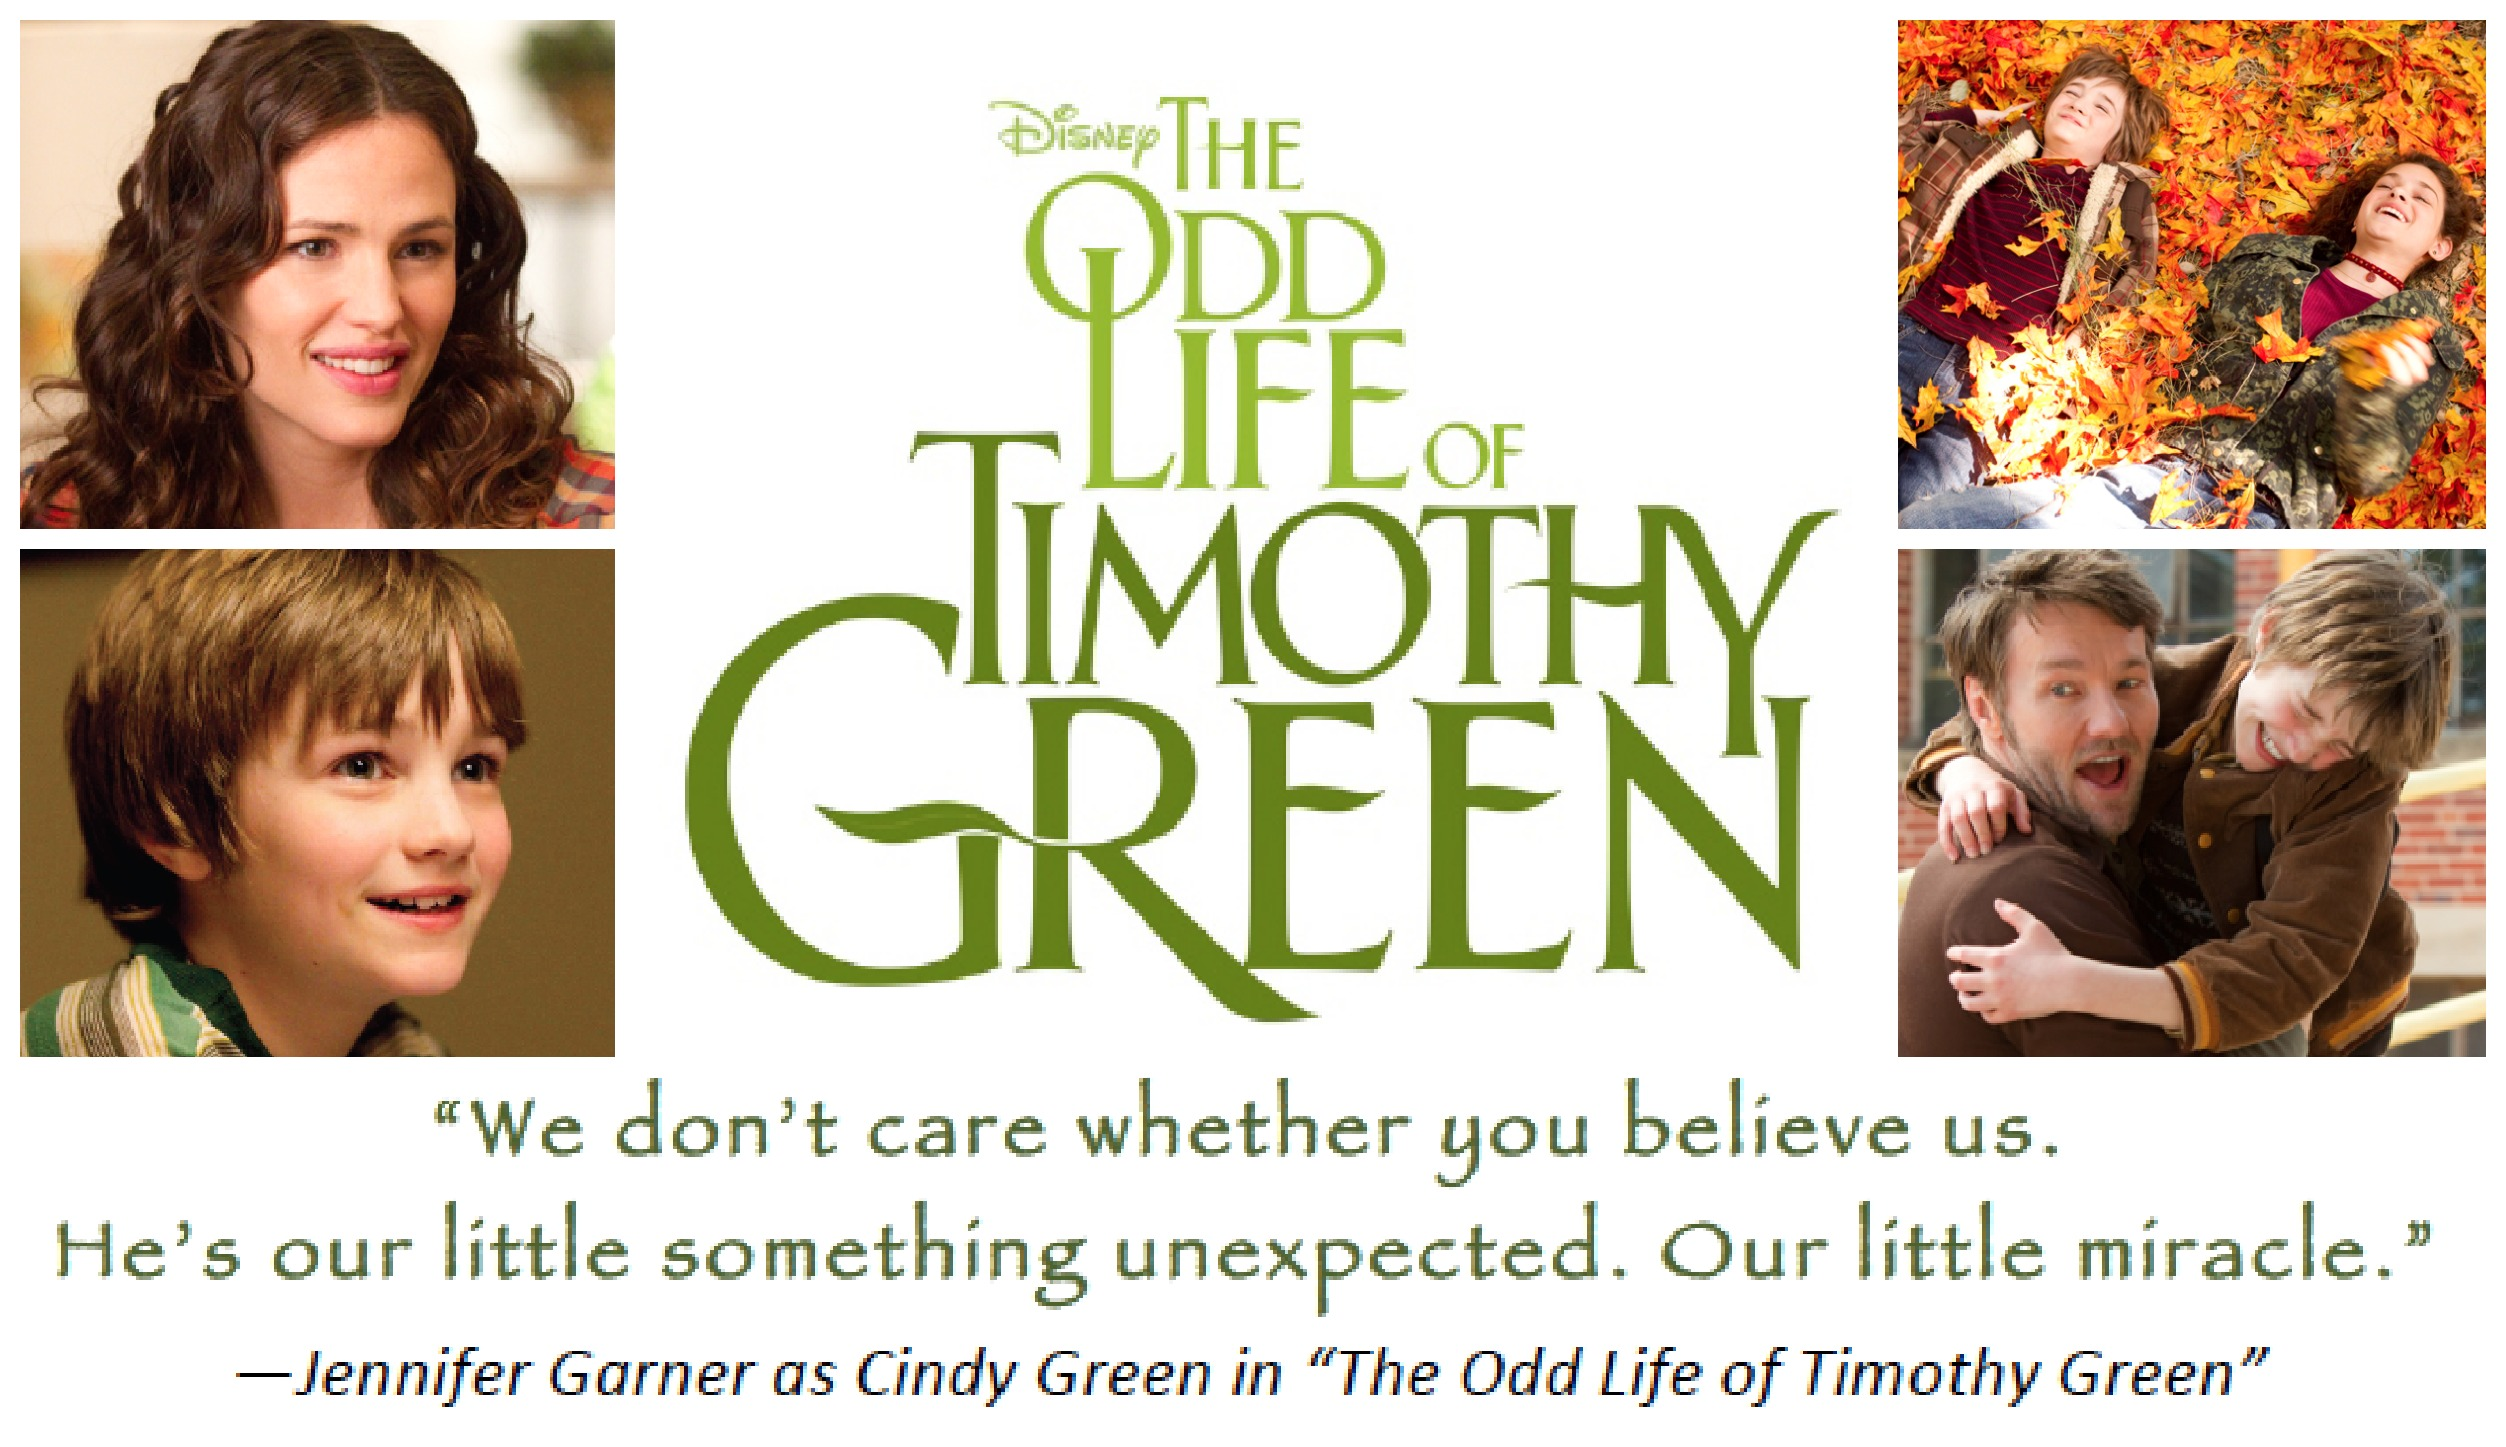 The Odd Life of Timothy Green 2012 movie